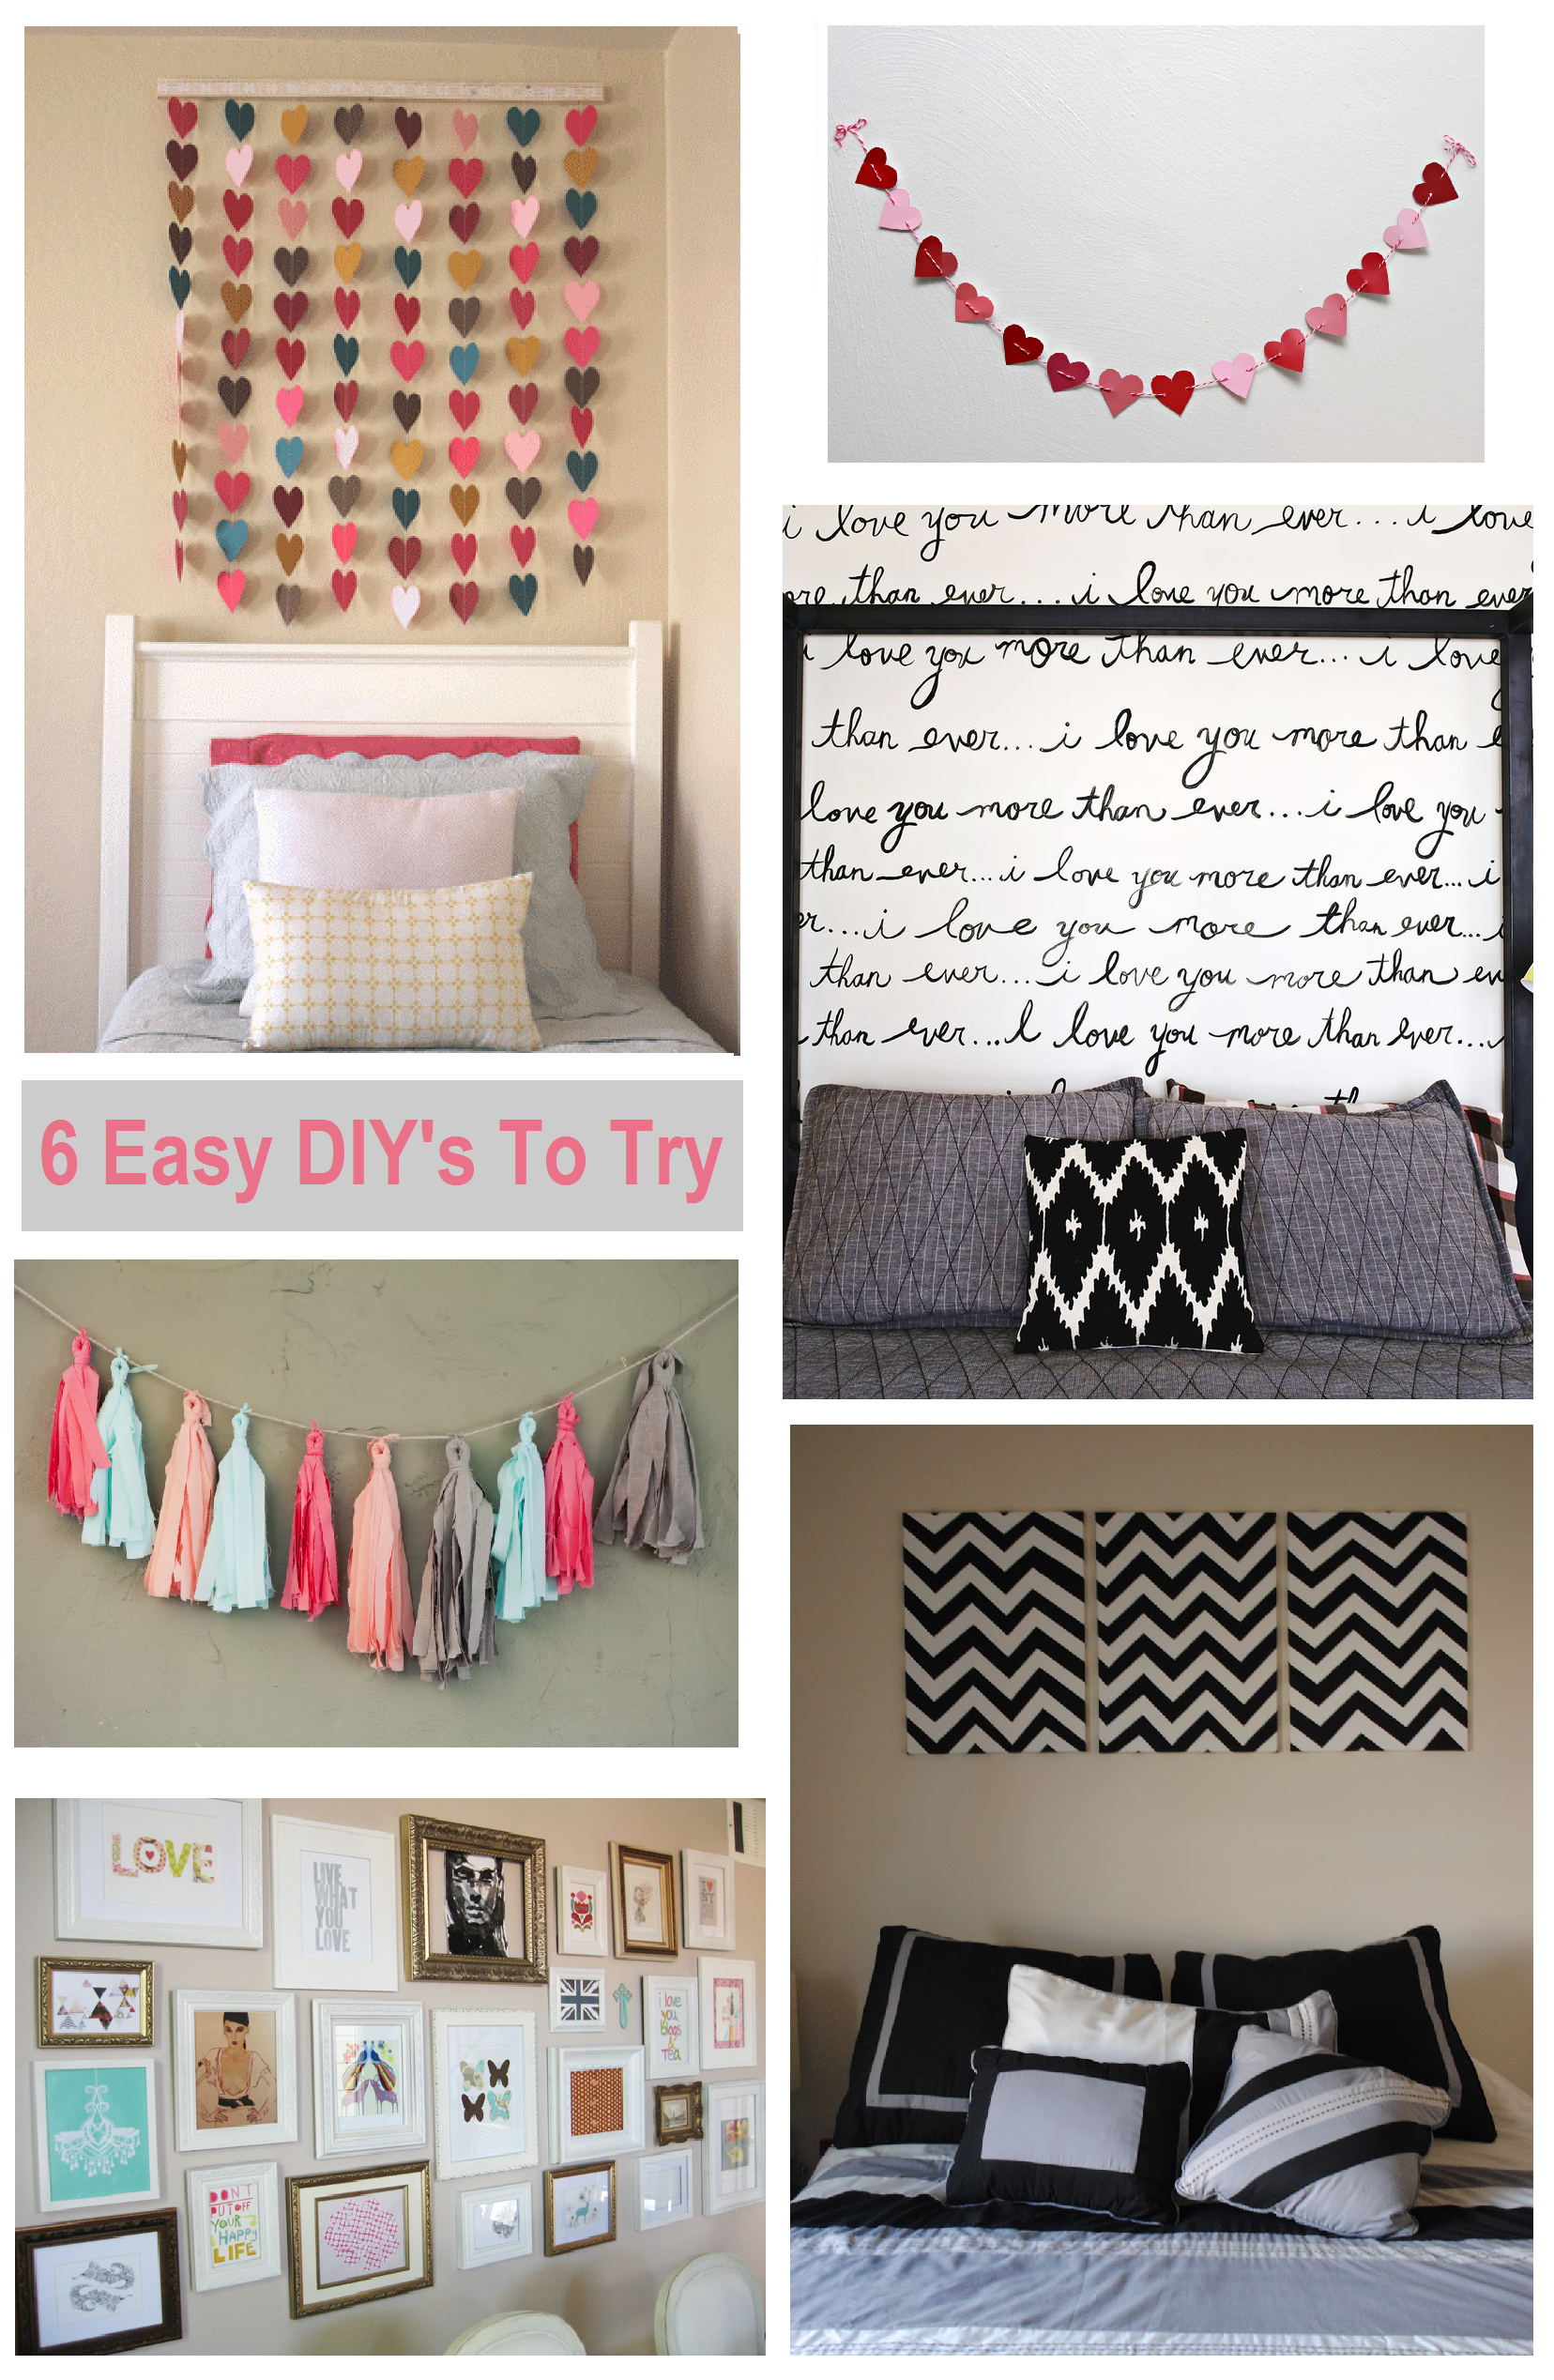 Tumblr room ideas diy - 1000 Images About Room Decor Tumblr On Pinterest Quote Art 1000 Images About Room Decor Tumblr